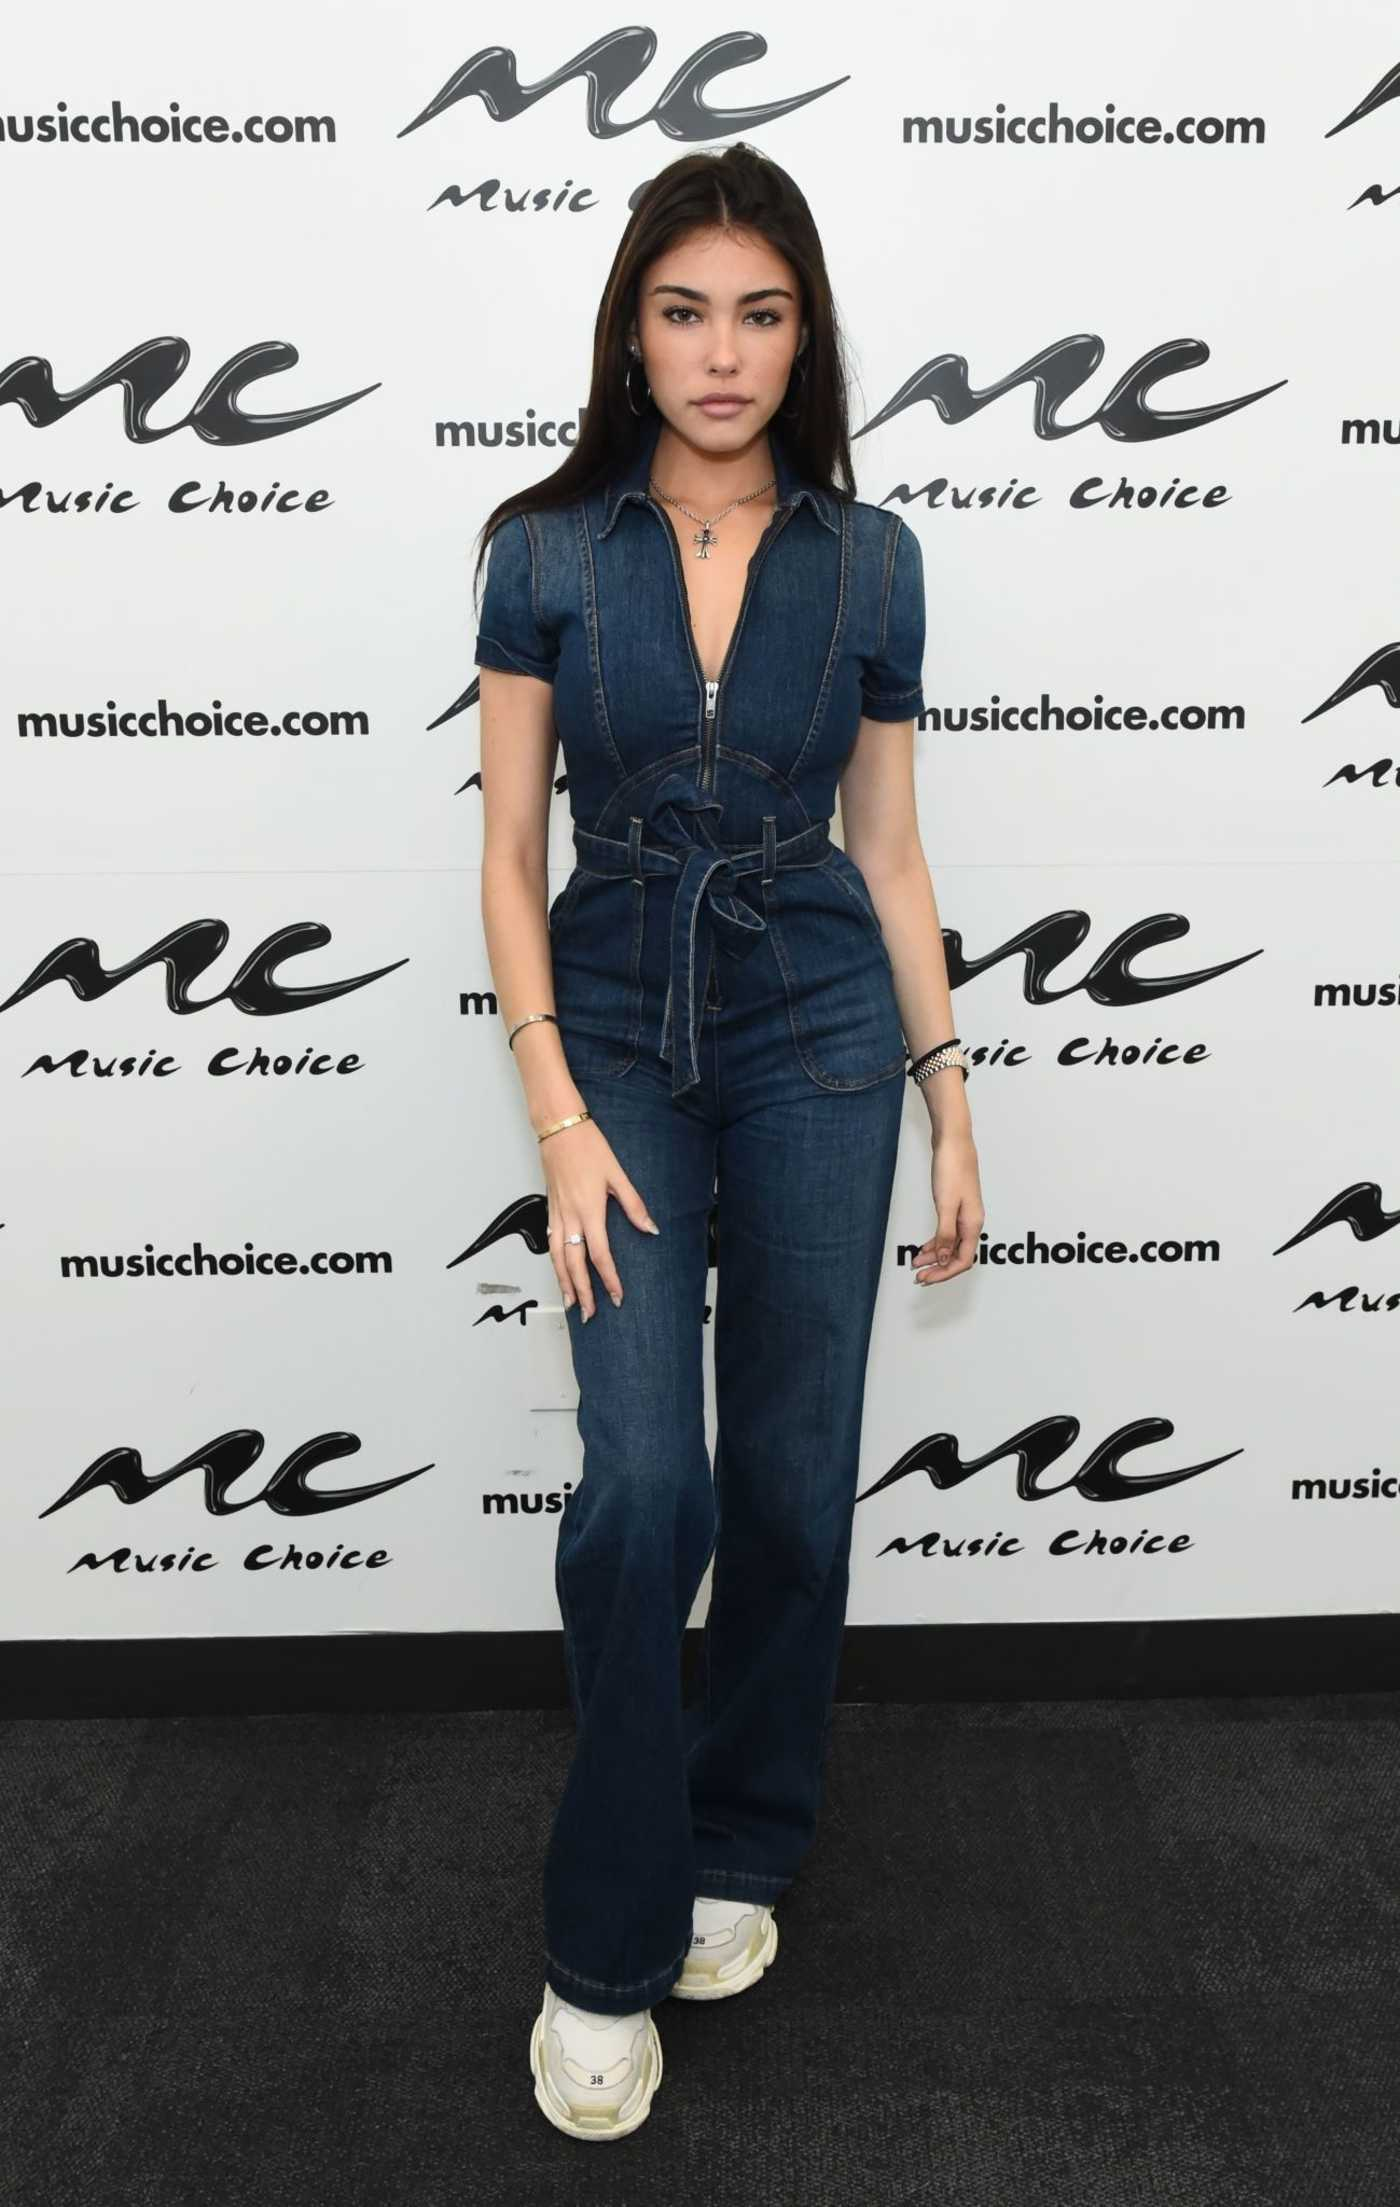 Madison Beer Visits at Music Choice in NYC 11/08/2018